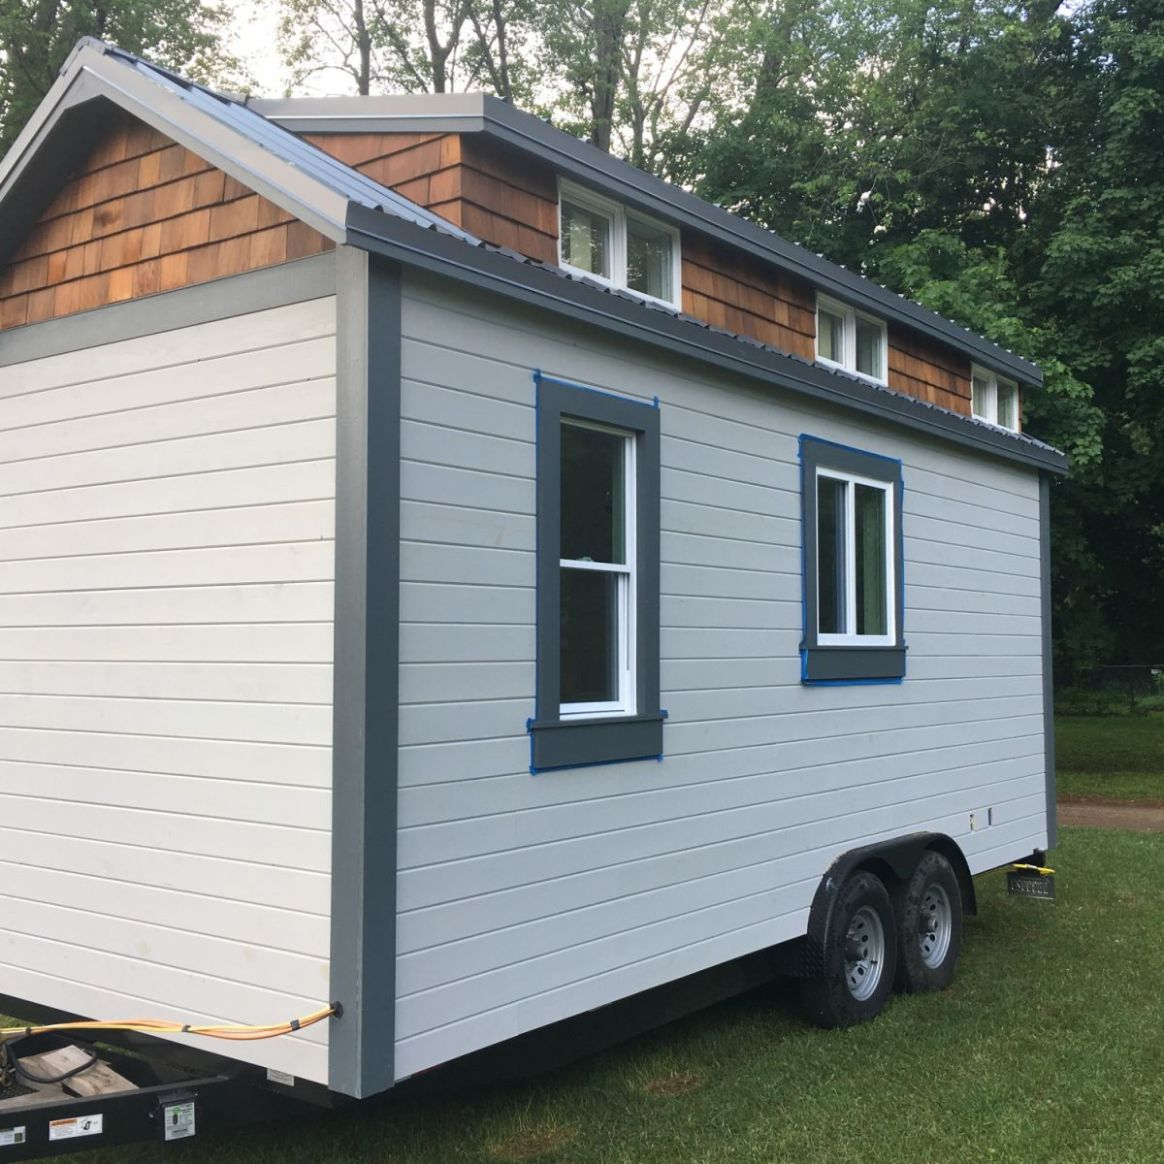 Tiny House for immediate sale! - Tiny House for Sale in Plymouth, Michigan  - Tiny House Listings - tiny house michigan